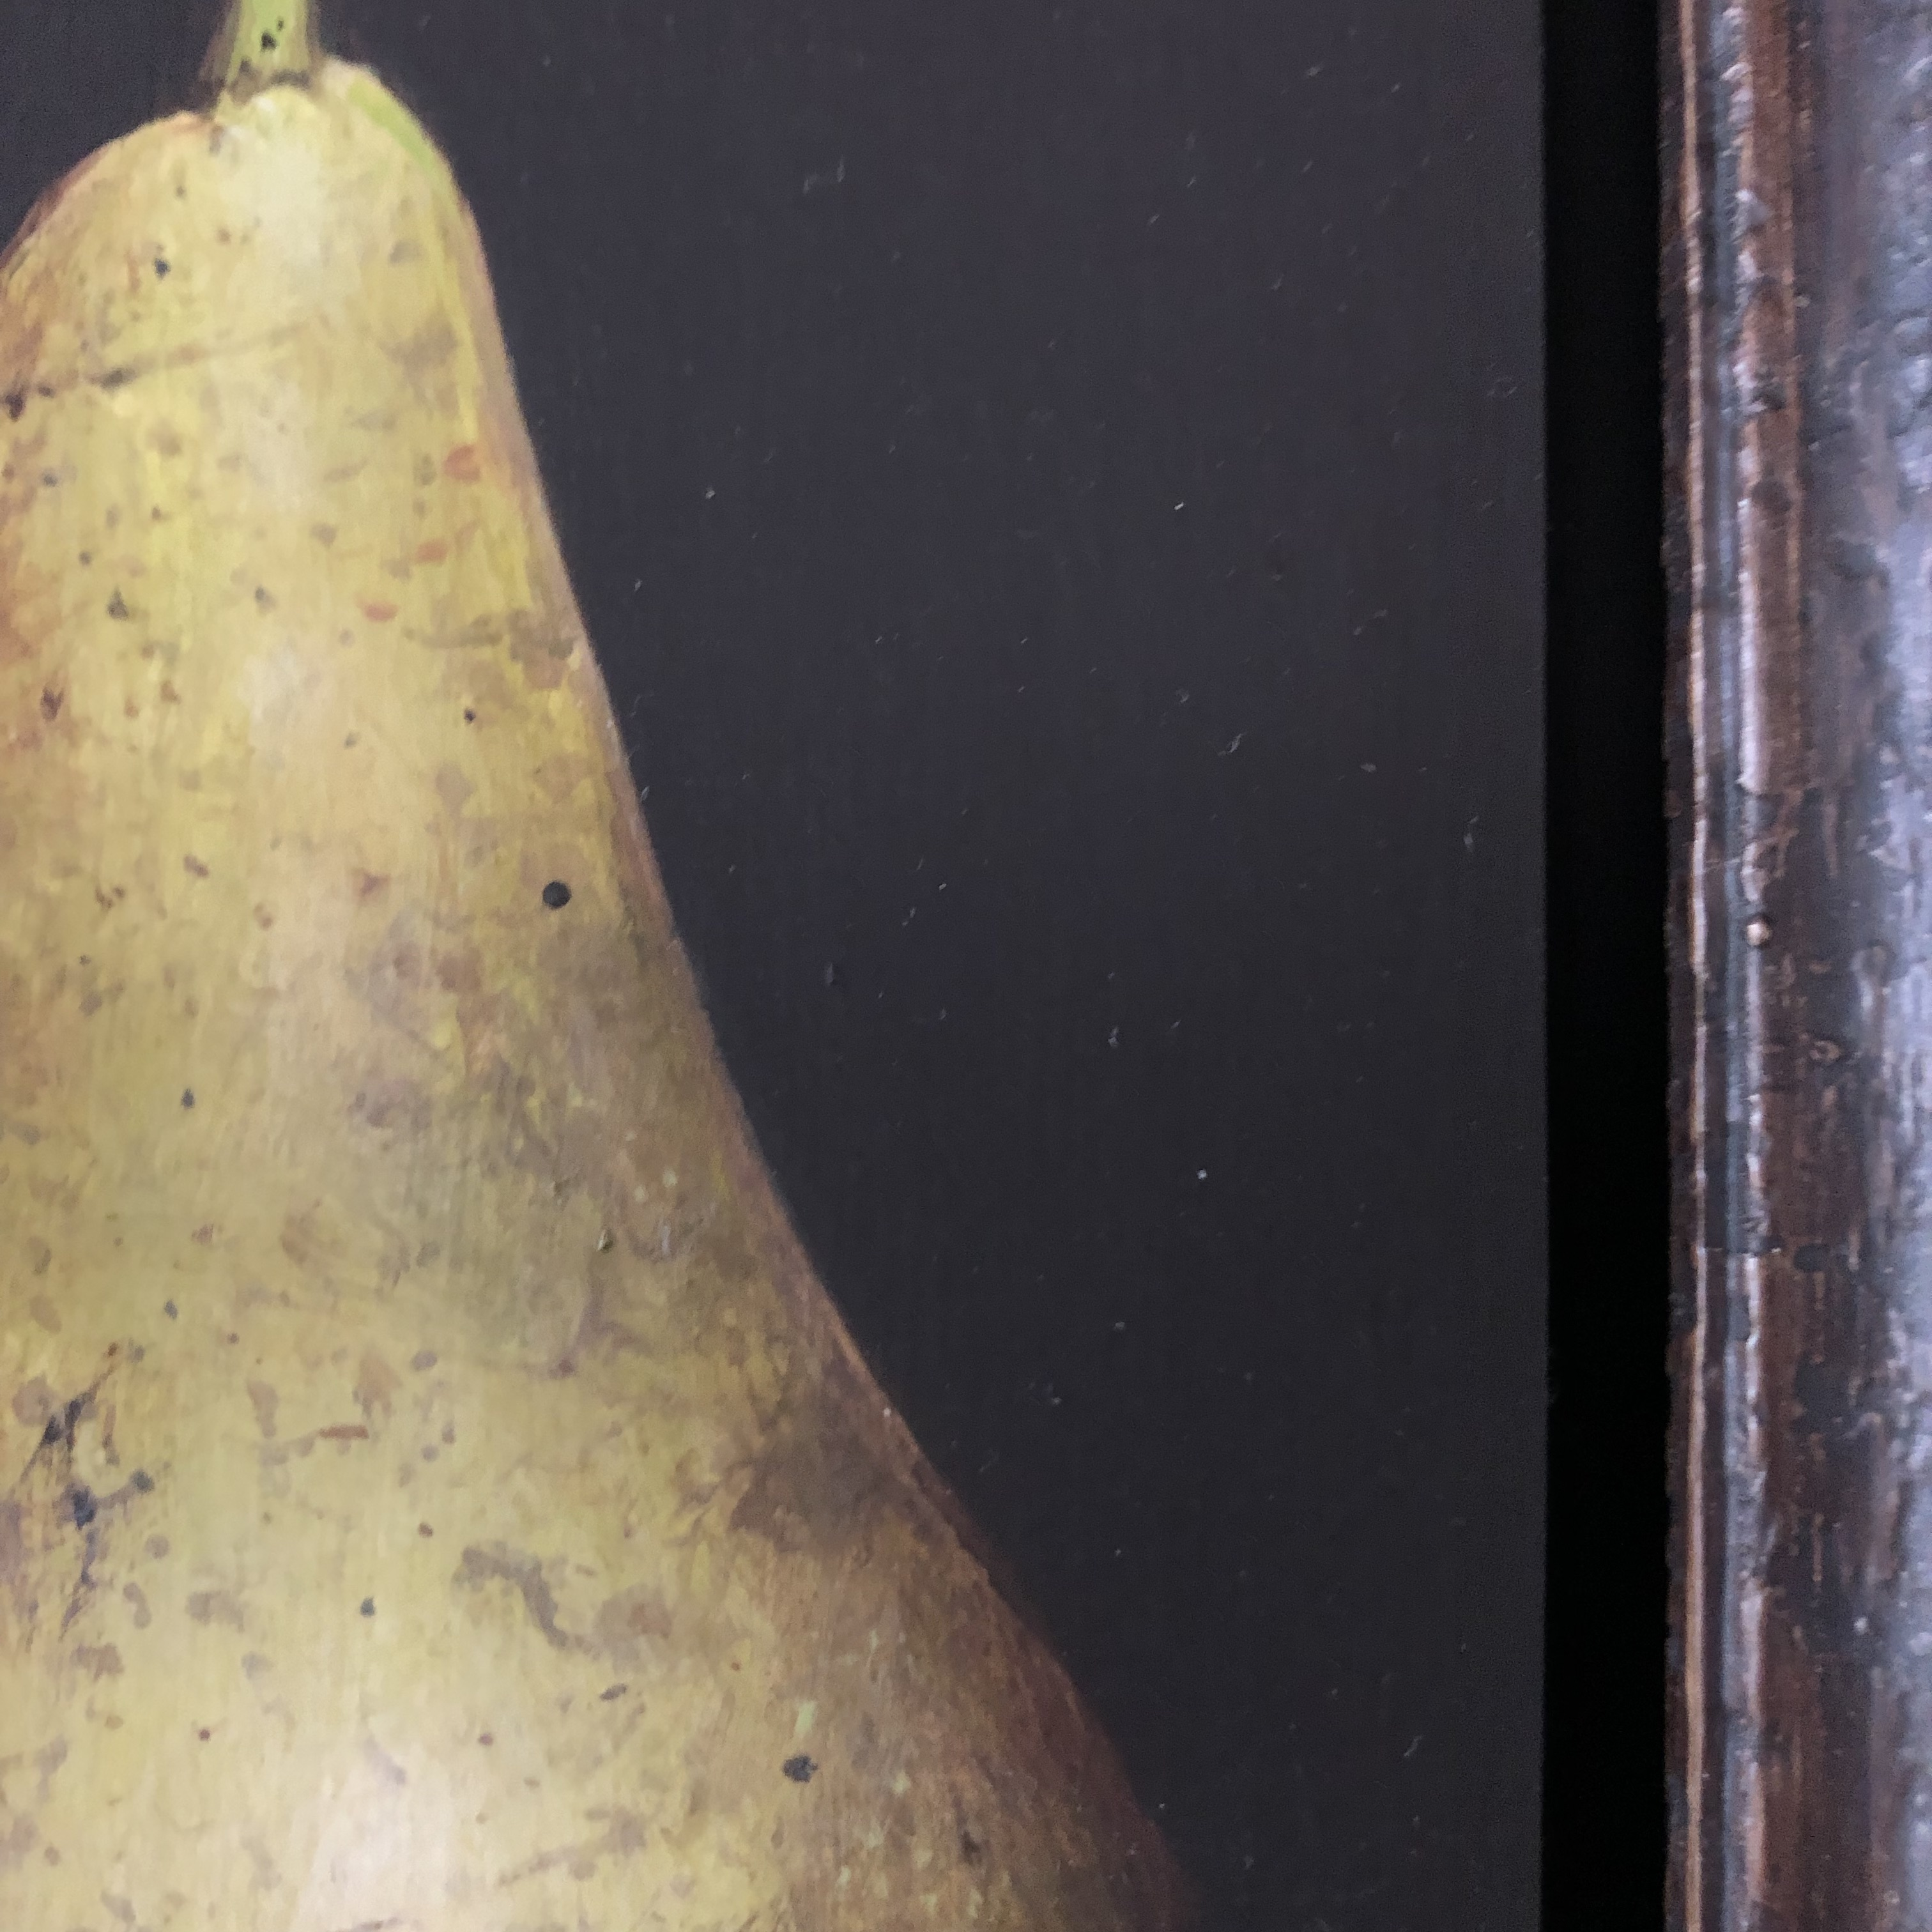 Conference Pear is an original oil painting by Dani Humberstone. The layered black frame and background enhances the colours and textures of the pear.